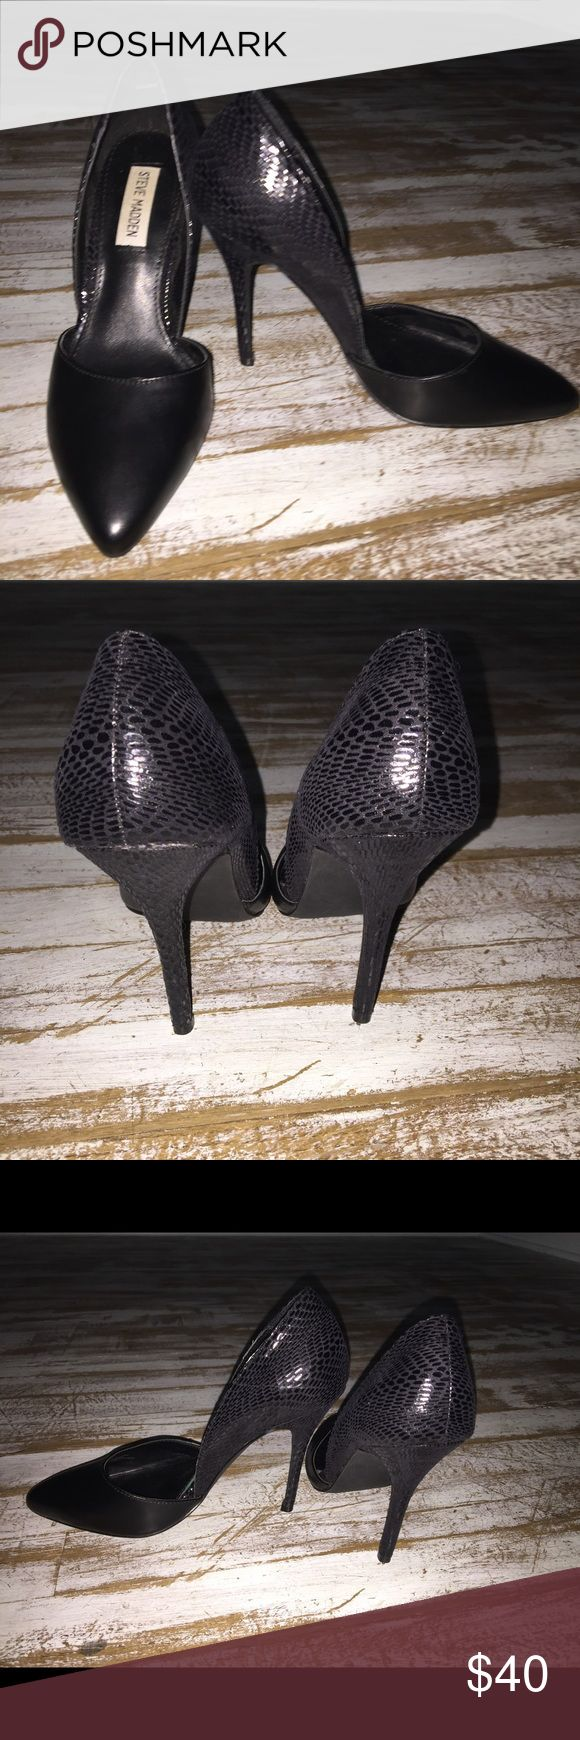 Like new, size 6.5, Steve Madden heels Sexy pair of Steve Madden, 4 inch heels with a leather toe and snake skinny heel. These are like new. Make me an offer. Steve Madden Shoes Heels